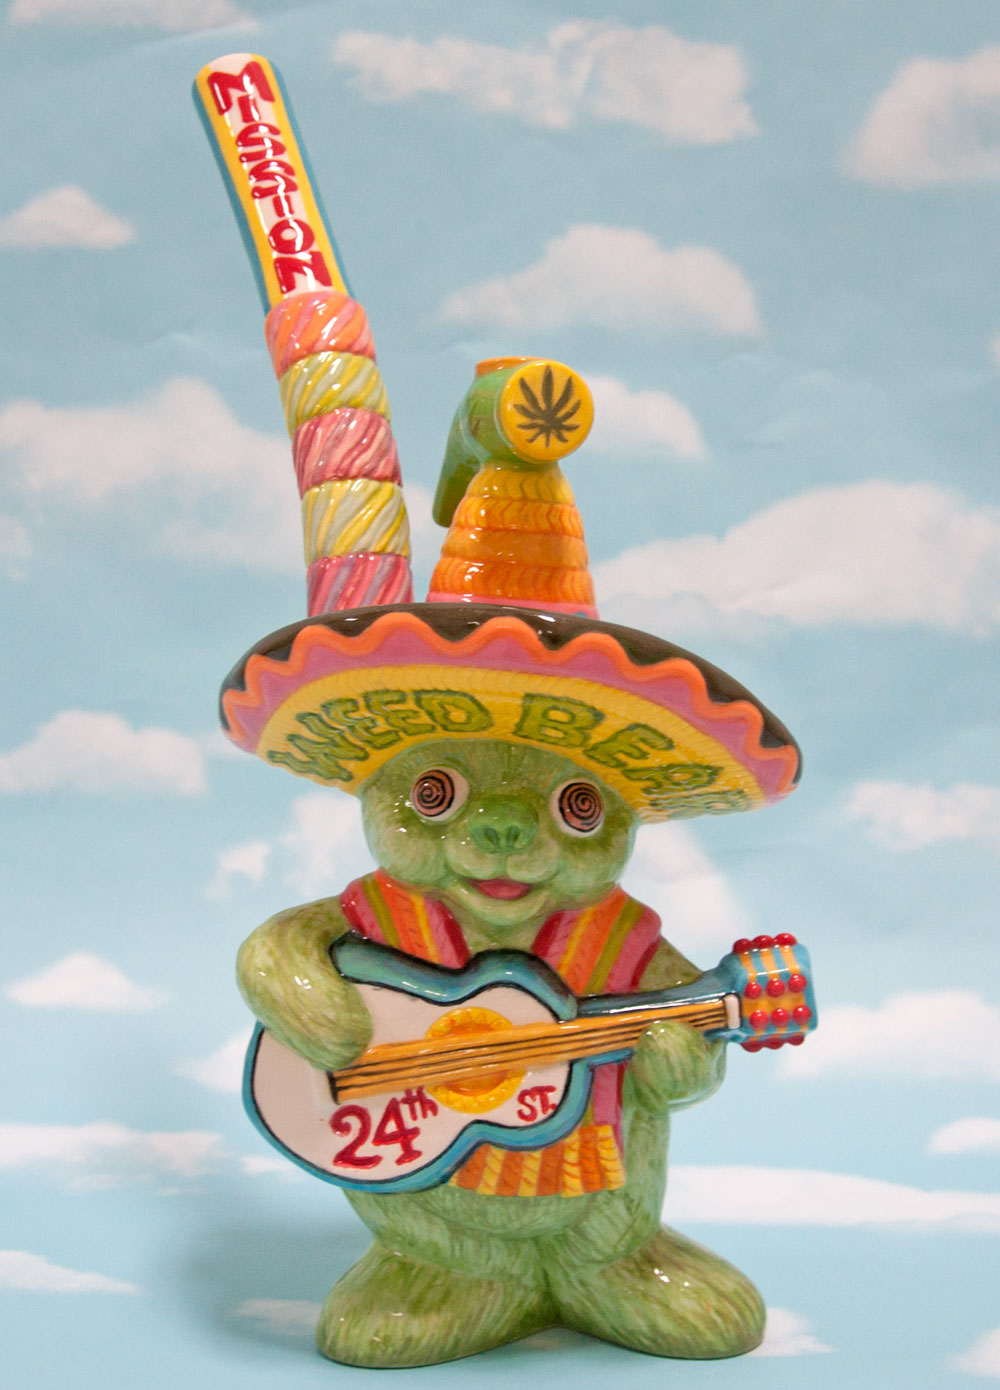 """Mission Mariachi Weed Bear Bong"", glazed ceramic, 14 1/4 x 6 1/2 x 5 1/2 in, 2018"